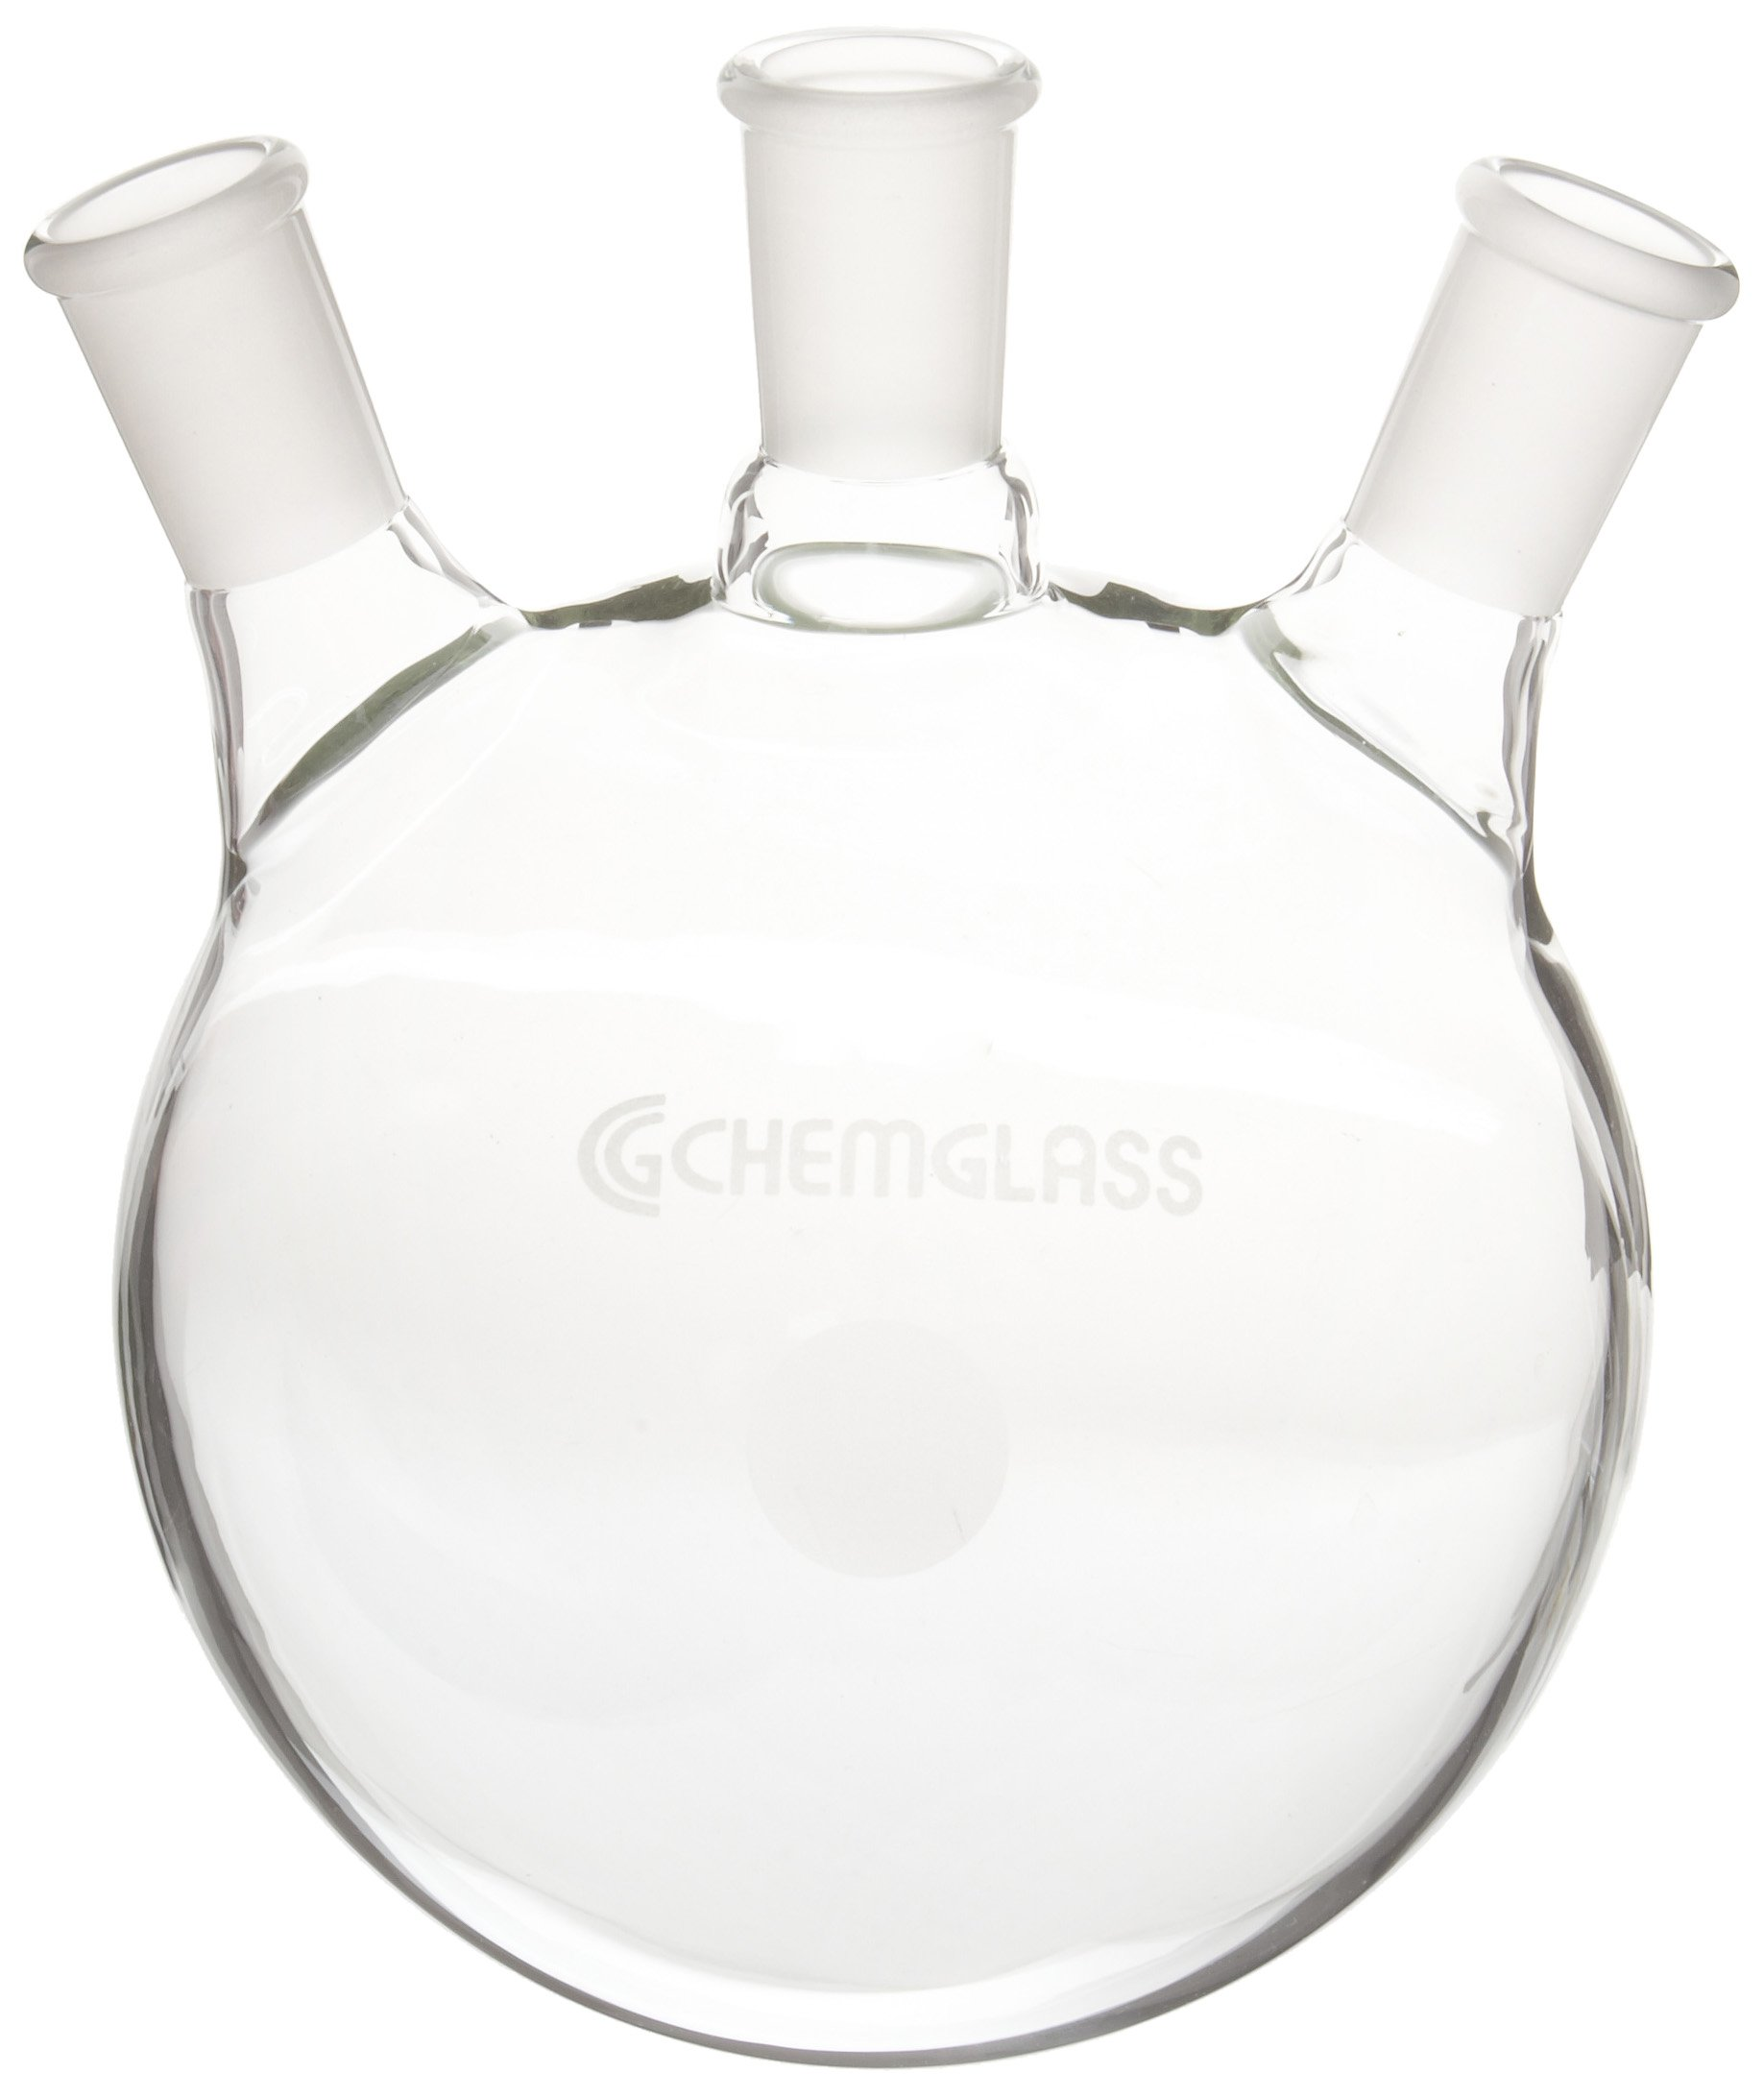 Chemglass CG-1524-50 Glass 2000mL Round Heavy Wall 3 Neck Bottom Boiling Flask with 24/40 Standard Taper Outer Joint and 20 Degree Angle